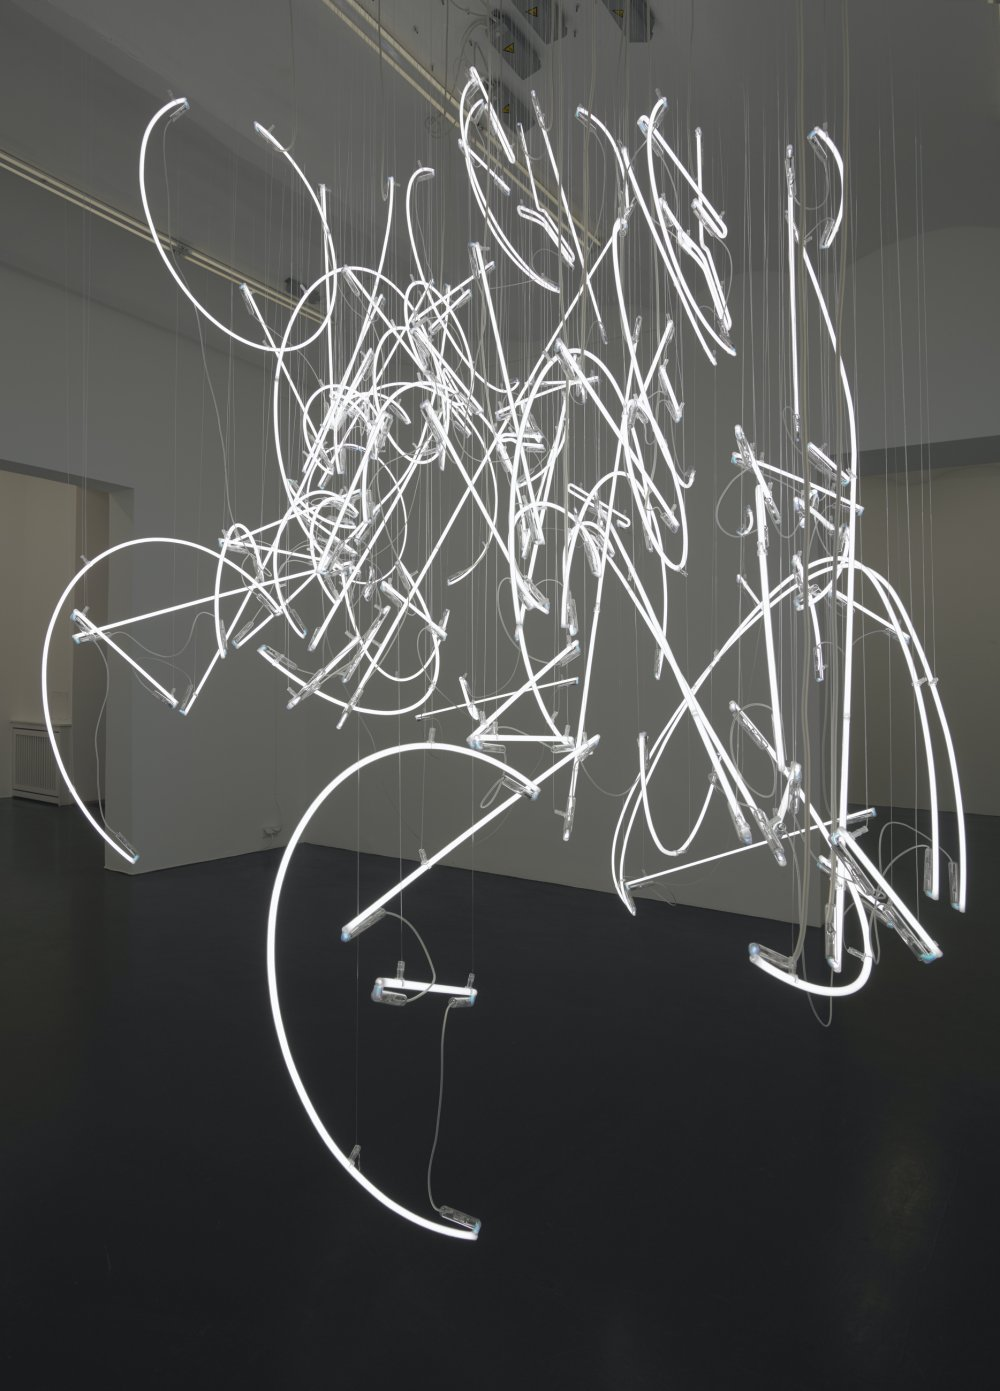 Neon Forms (after Noh V)